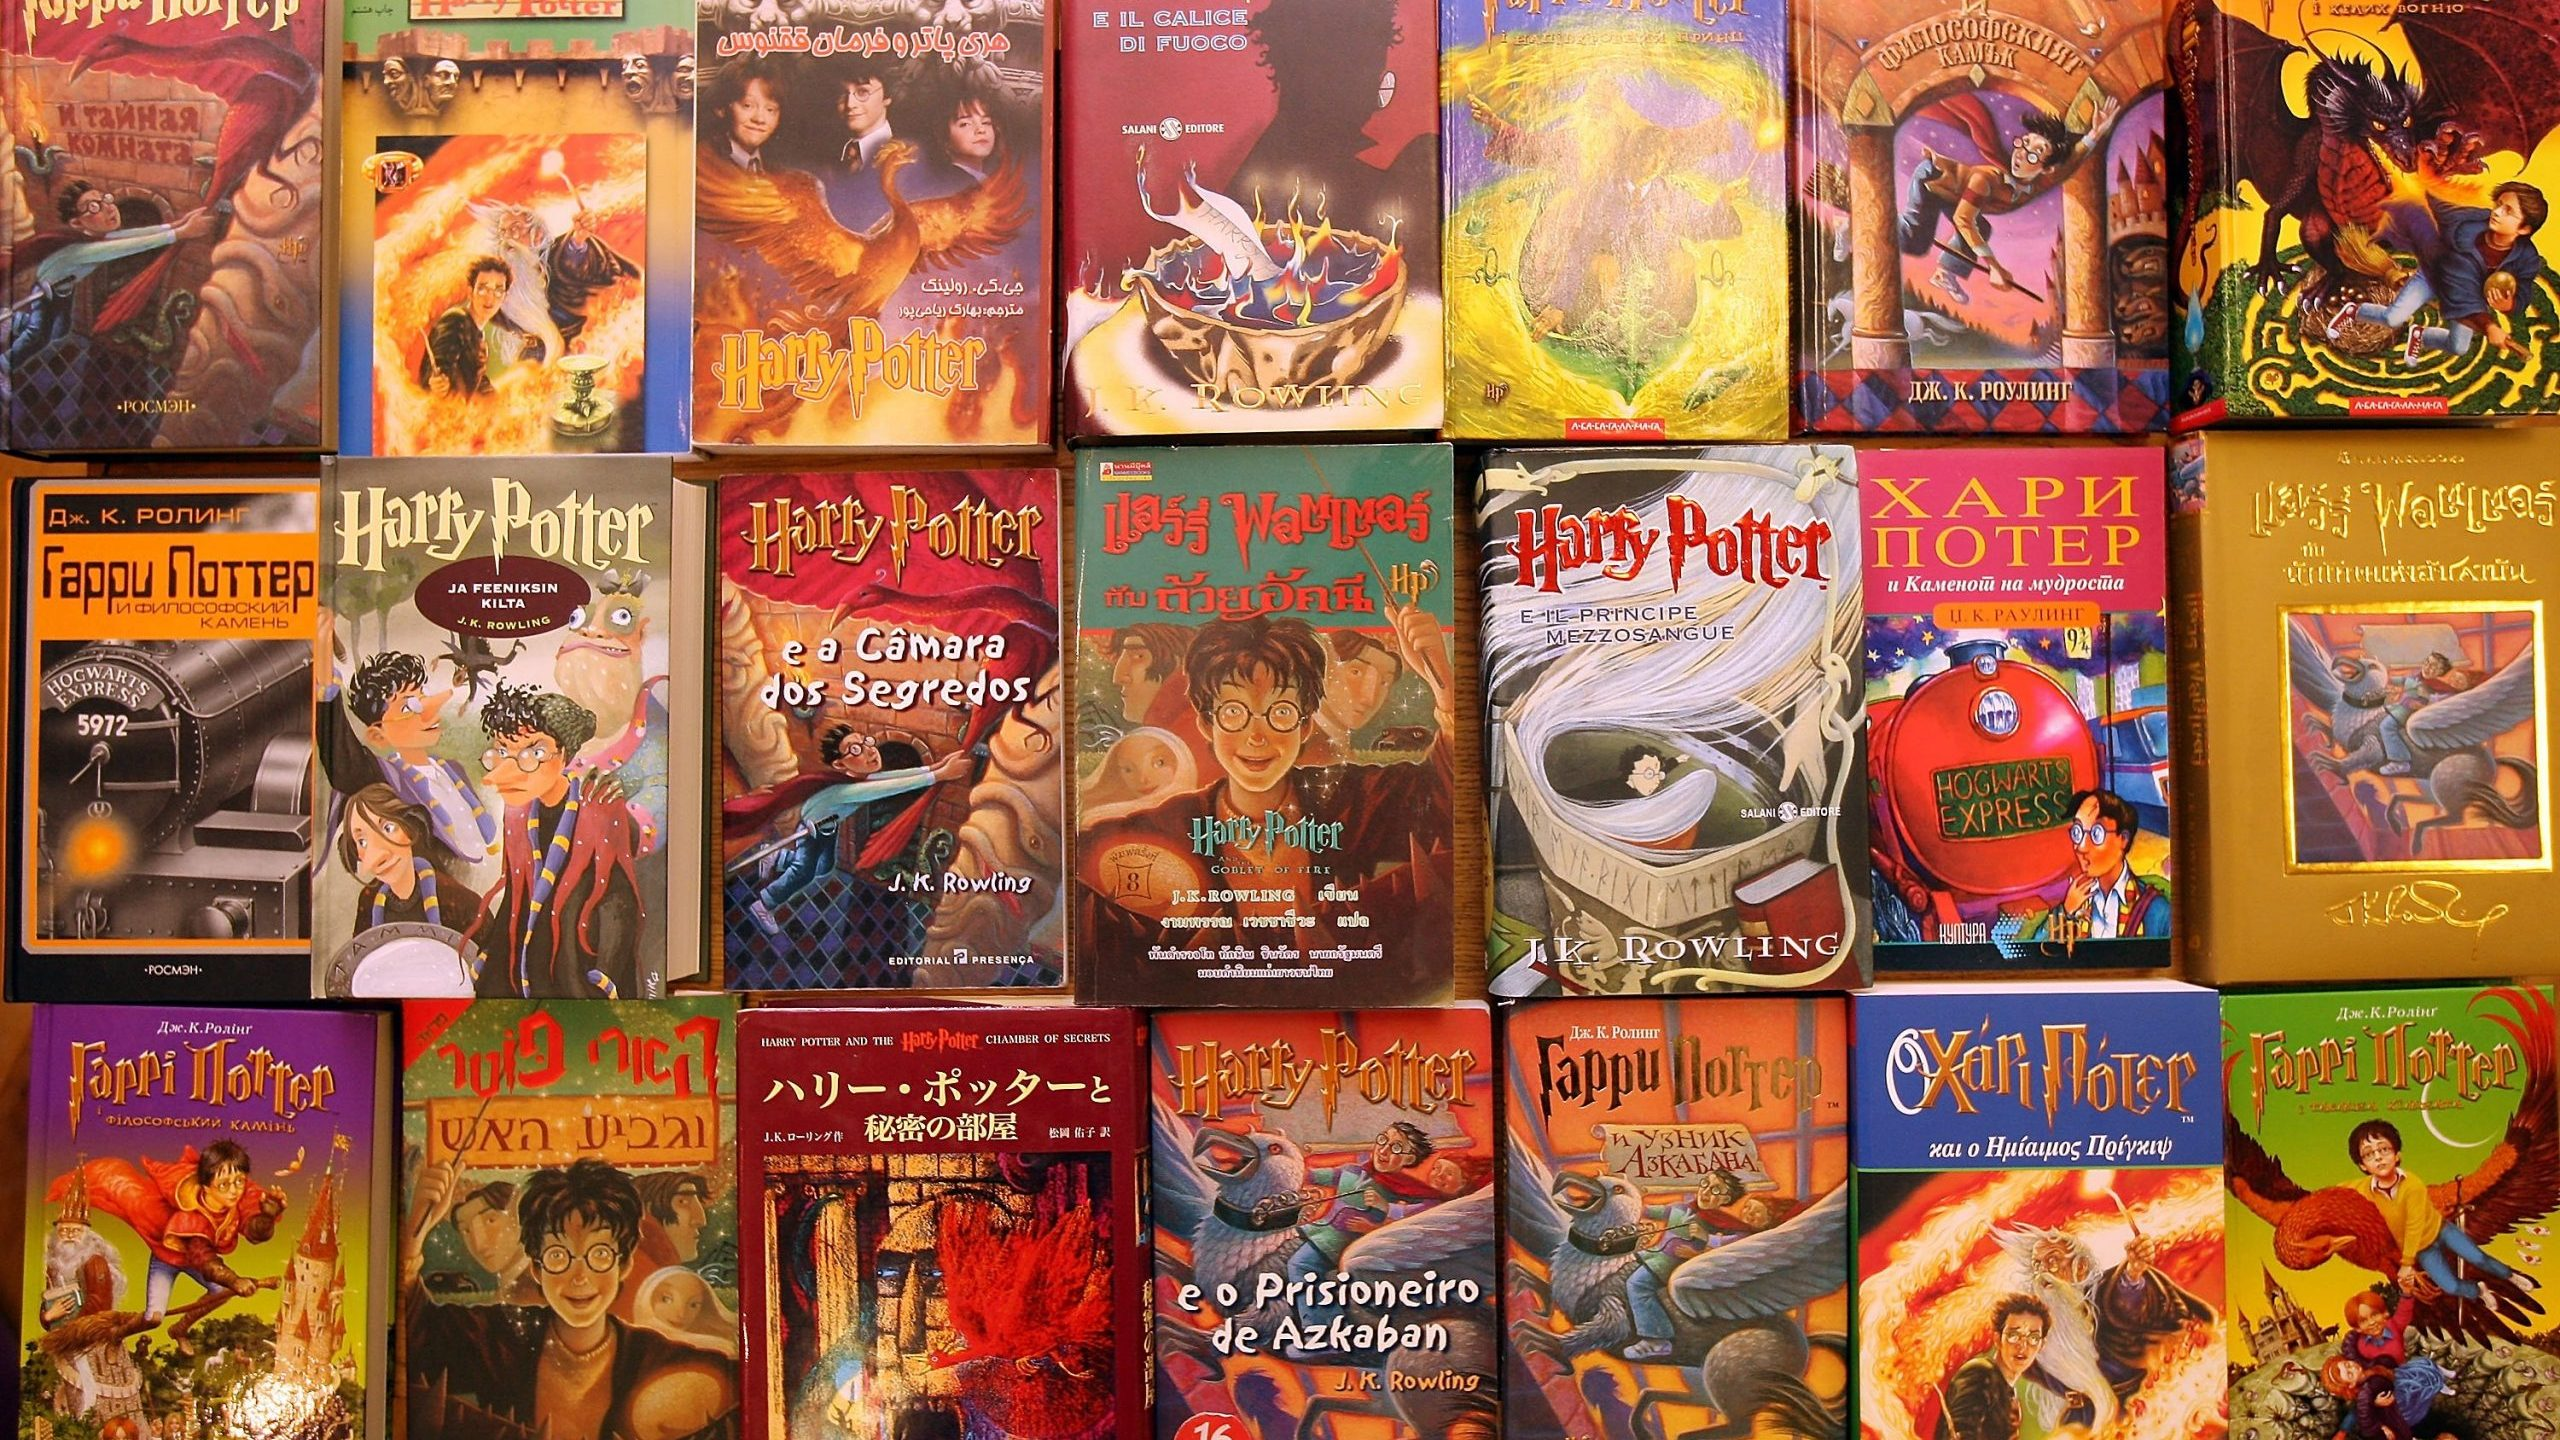 Employee Stole Almost 50 000 Worth Of Harry Potter Merchandise To Sell On Ebay Myfox8 Com